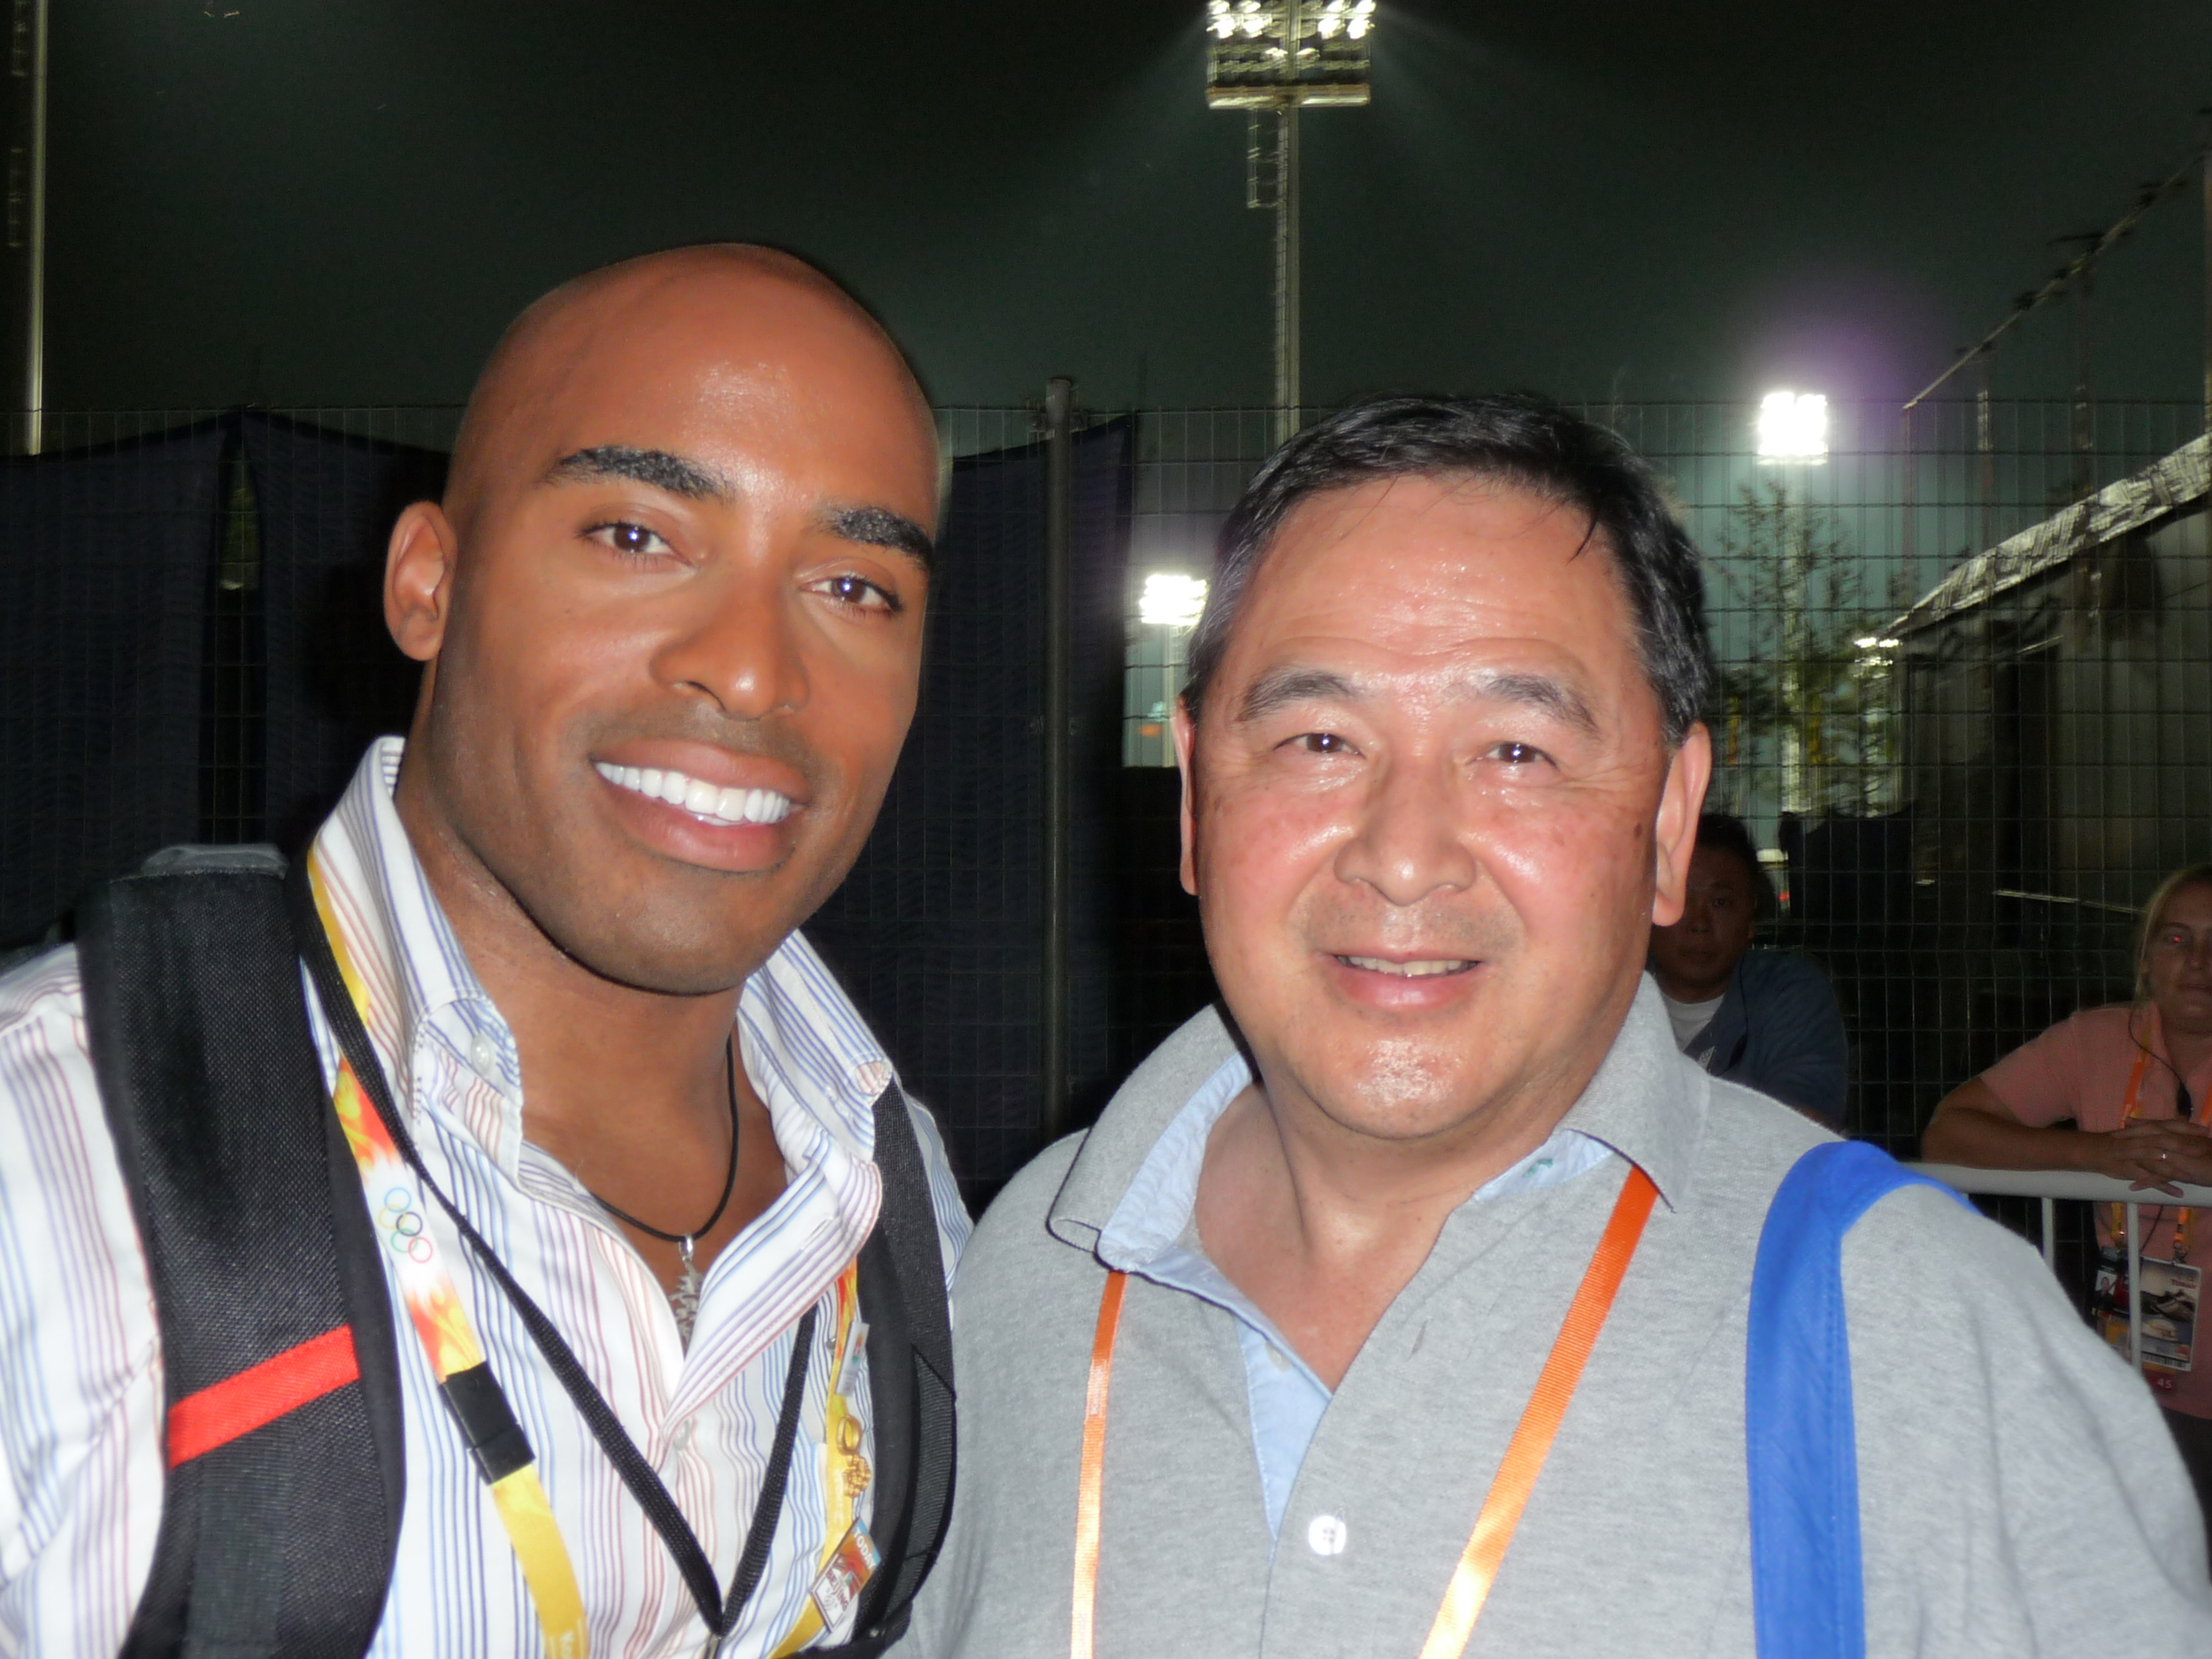 The NFL and NBC in Beijing